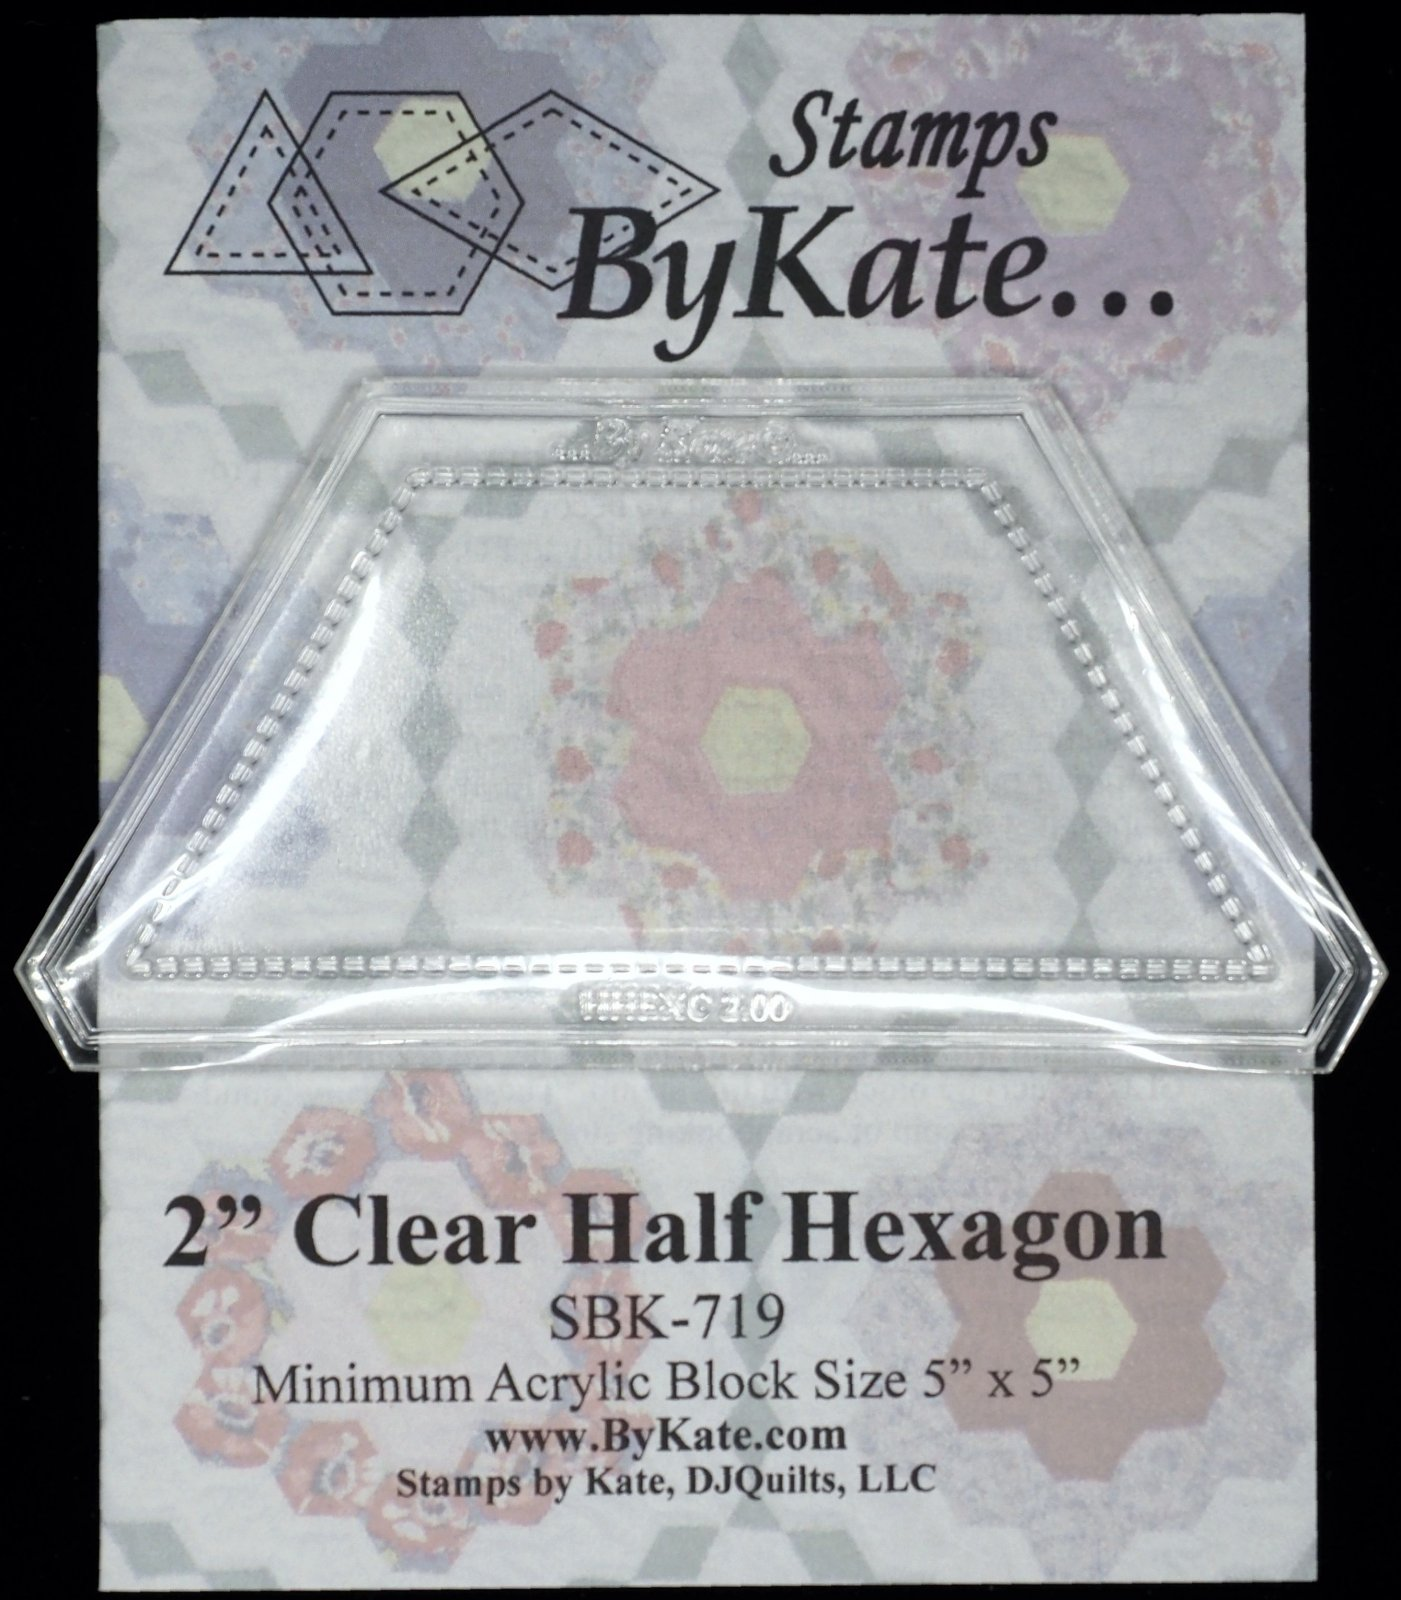 Clear Half Hexagon Stamps